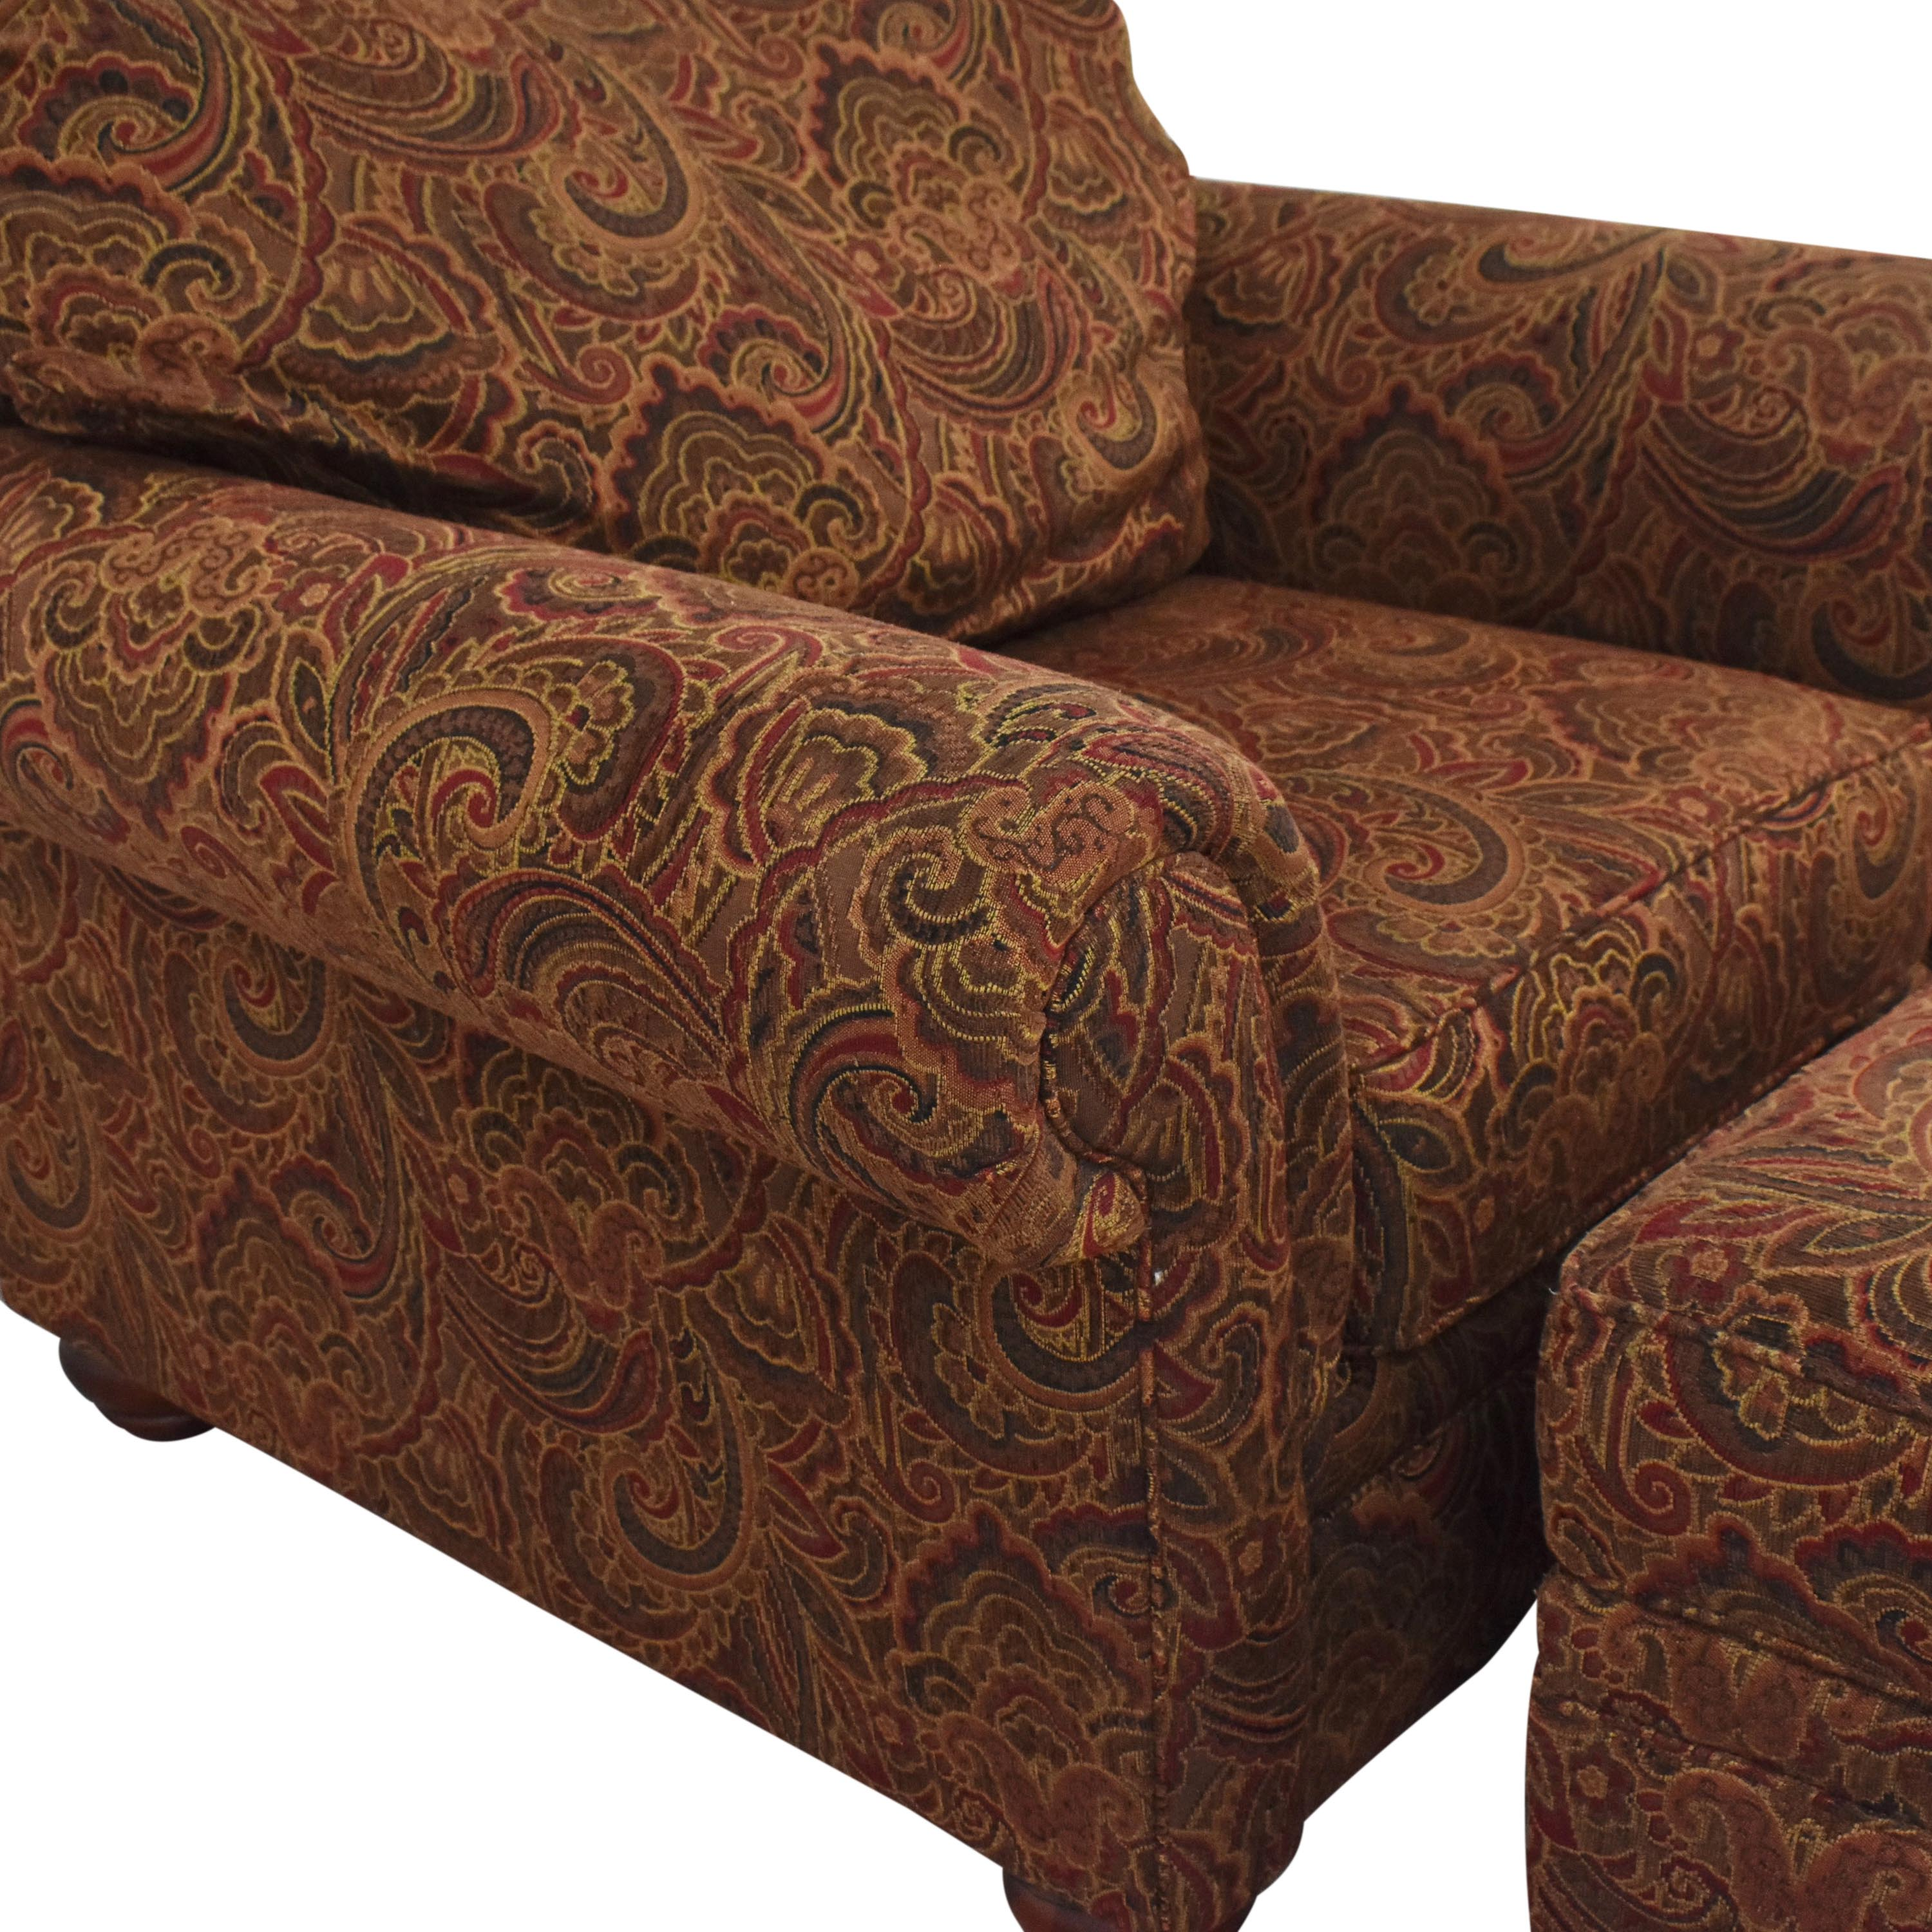 Broyhill Furniture Broyhill Furniture Roll Arm Accent Chair and Ottoman discount